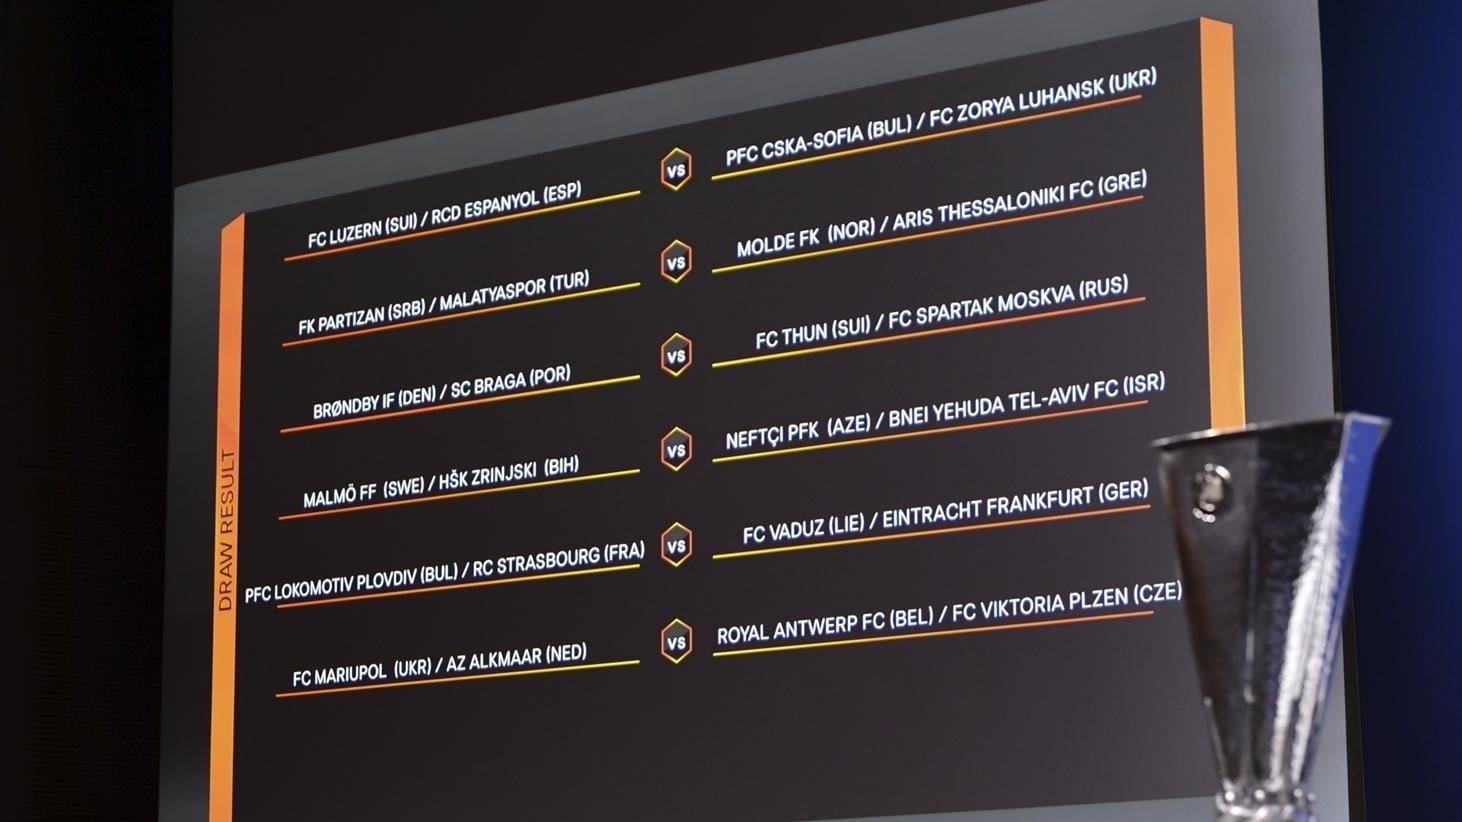 uefa europa league draws uefa com uefa europa league draws uefa com